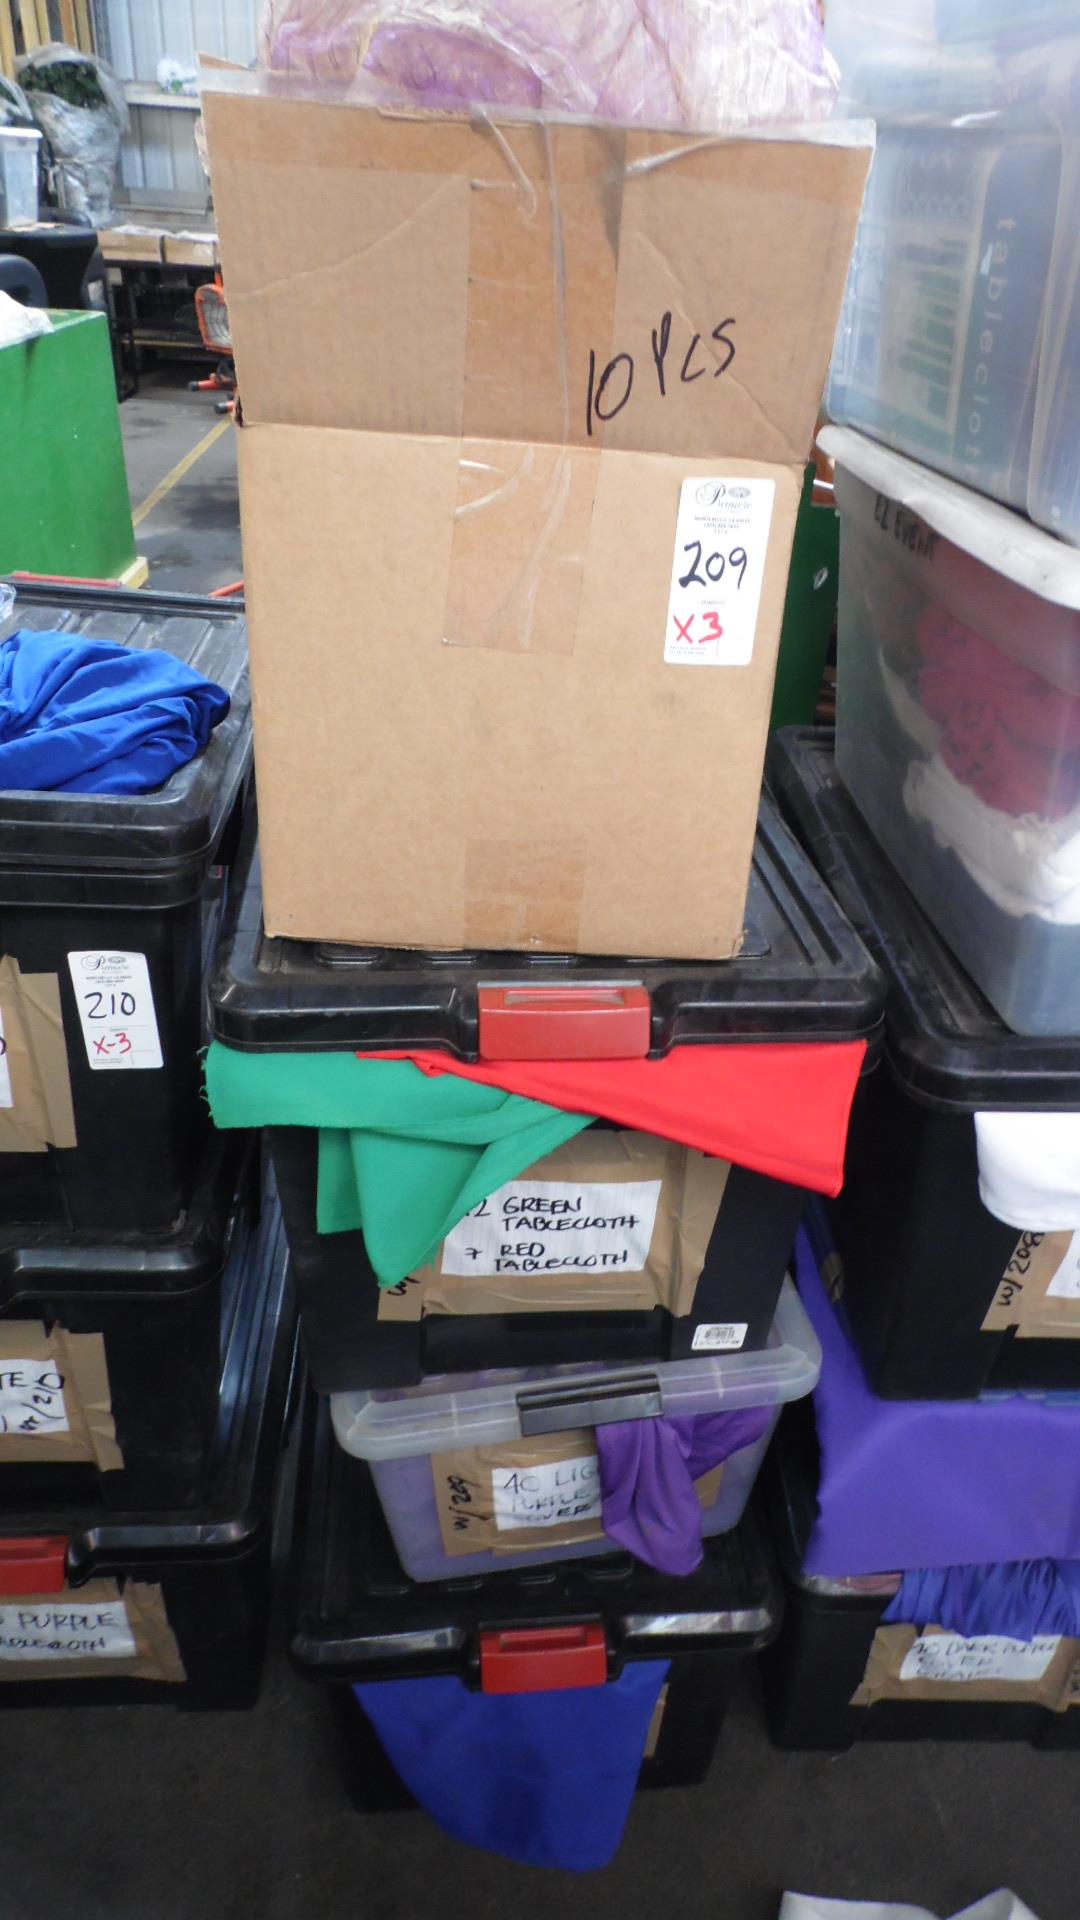 Lot 209 - CASES OF TABLE CLOTHS & COVERS